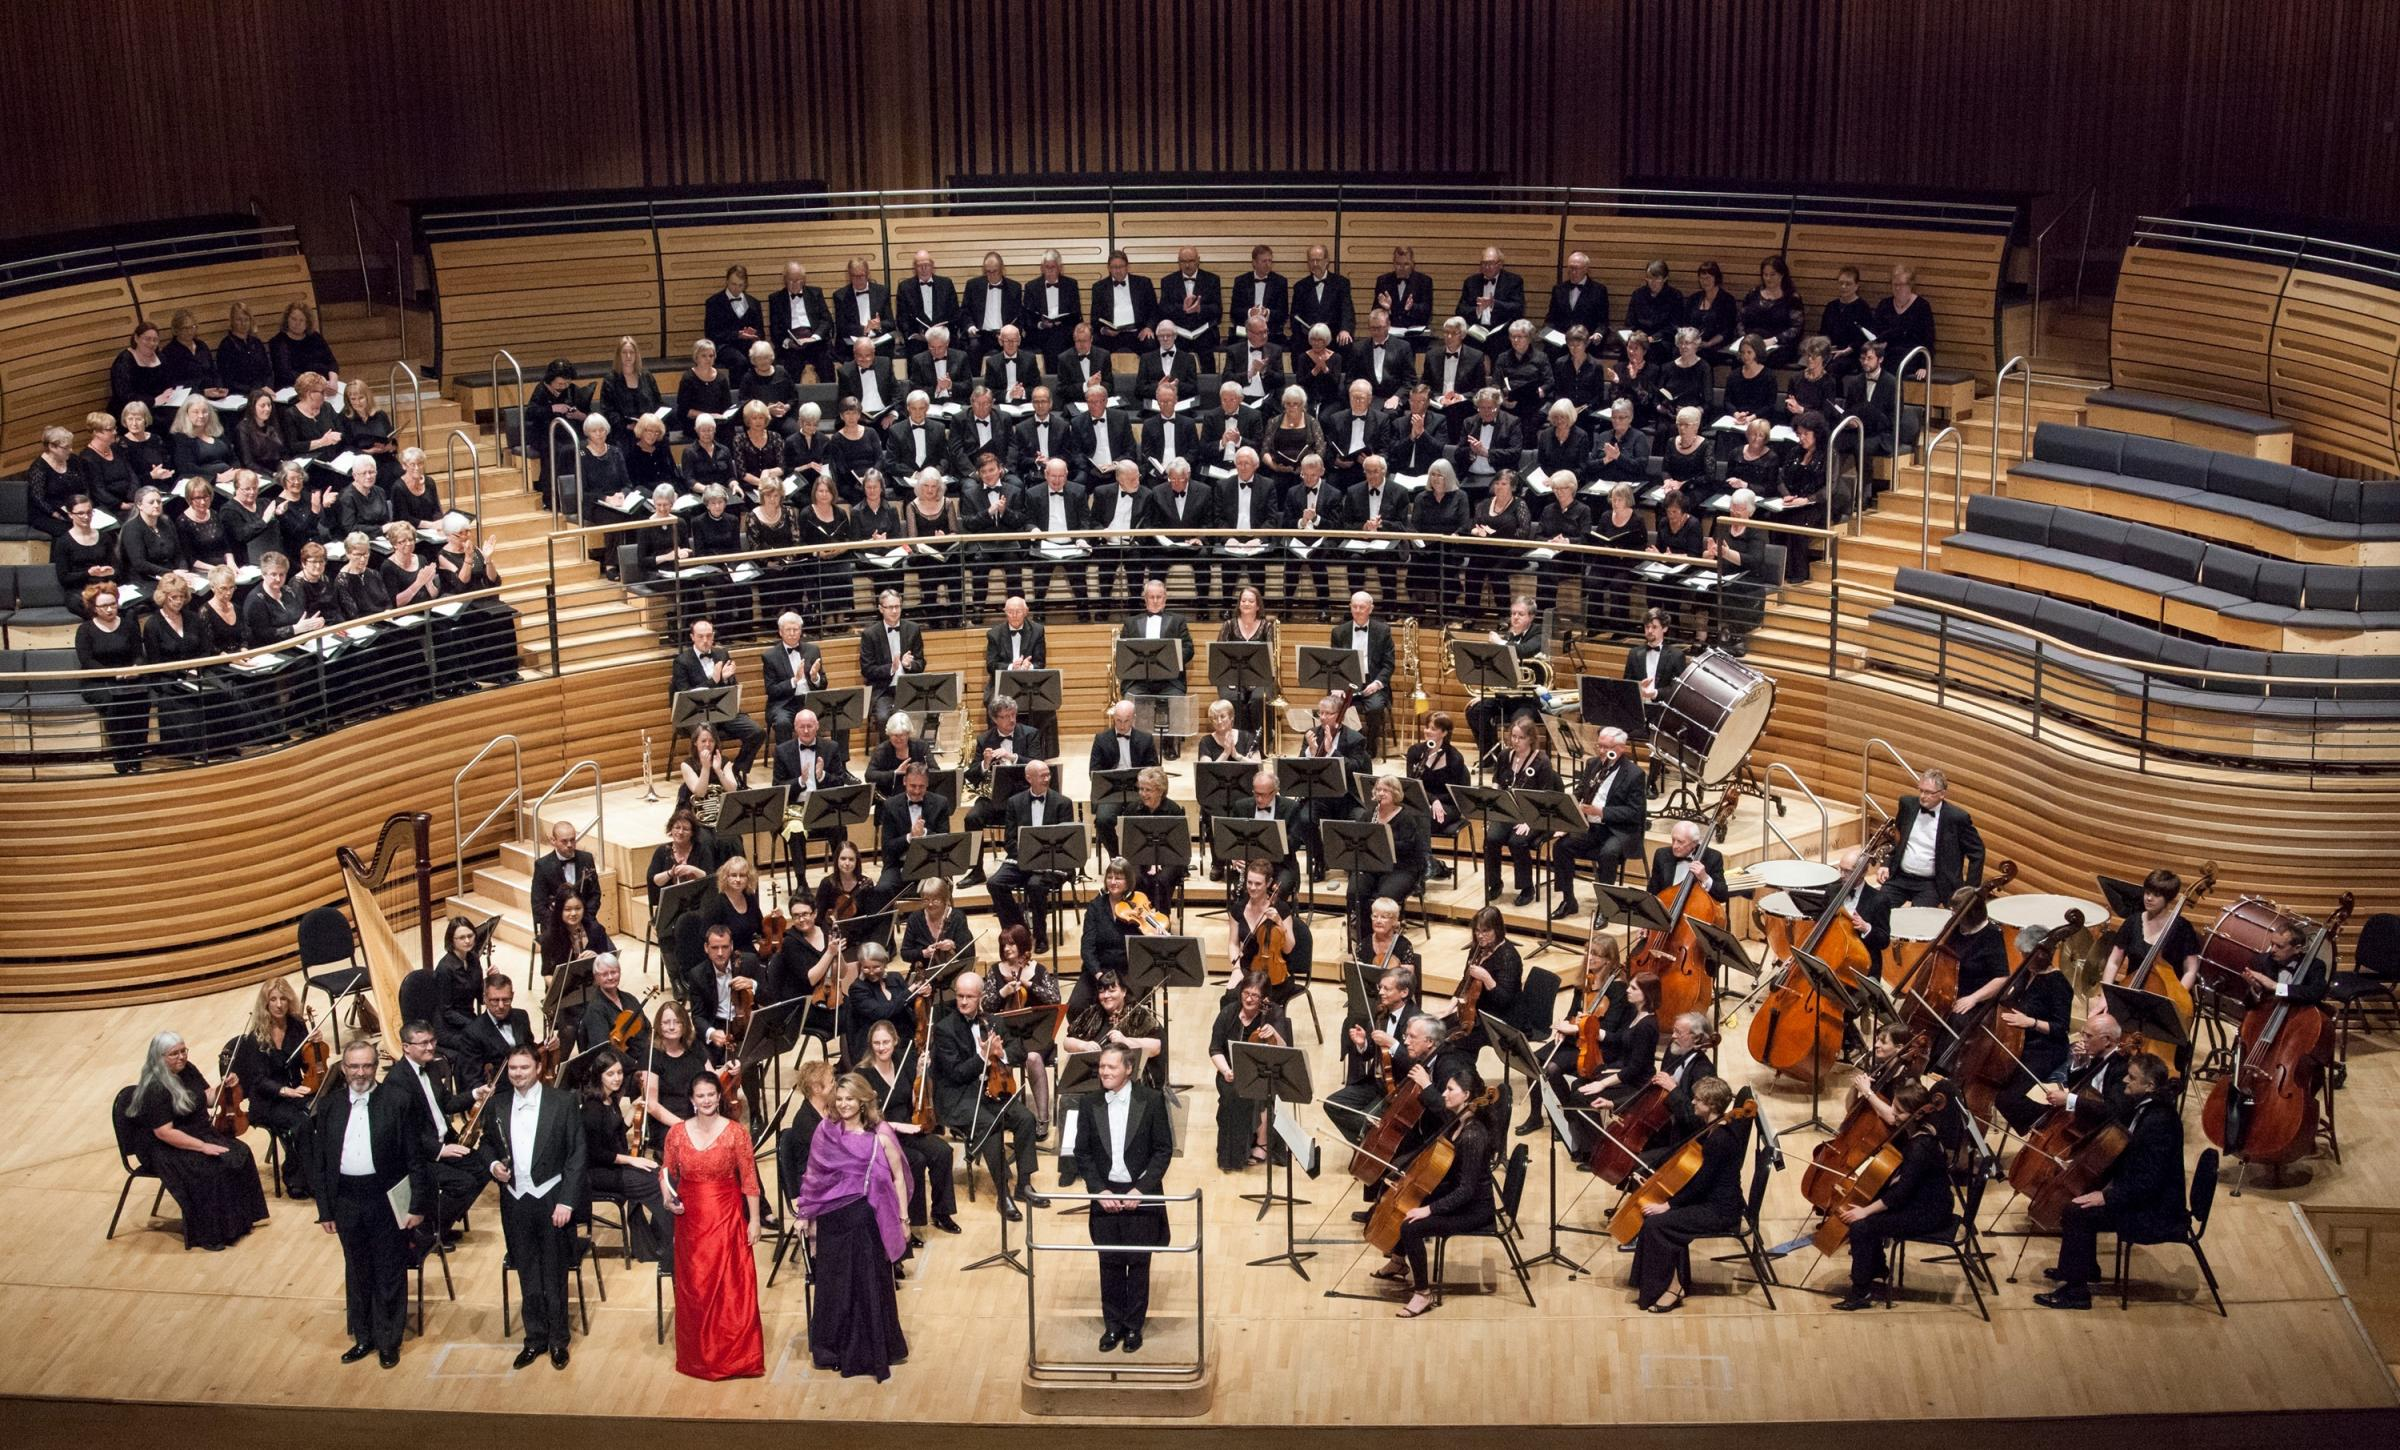 CONCERT: Orchestra North East with the Bishopwearmouth Choral Society and Ryton Choral Society at Sage Gateshead concert. Picture: SHONA BRANIGAN  (29482330)